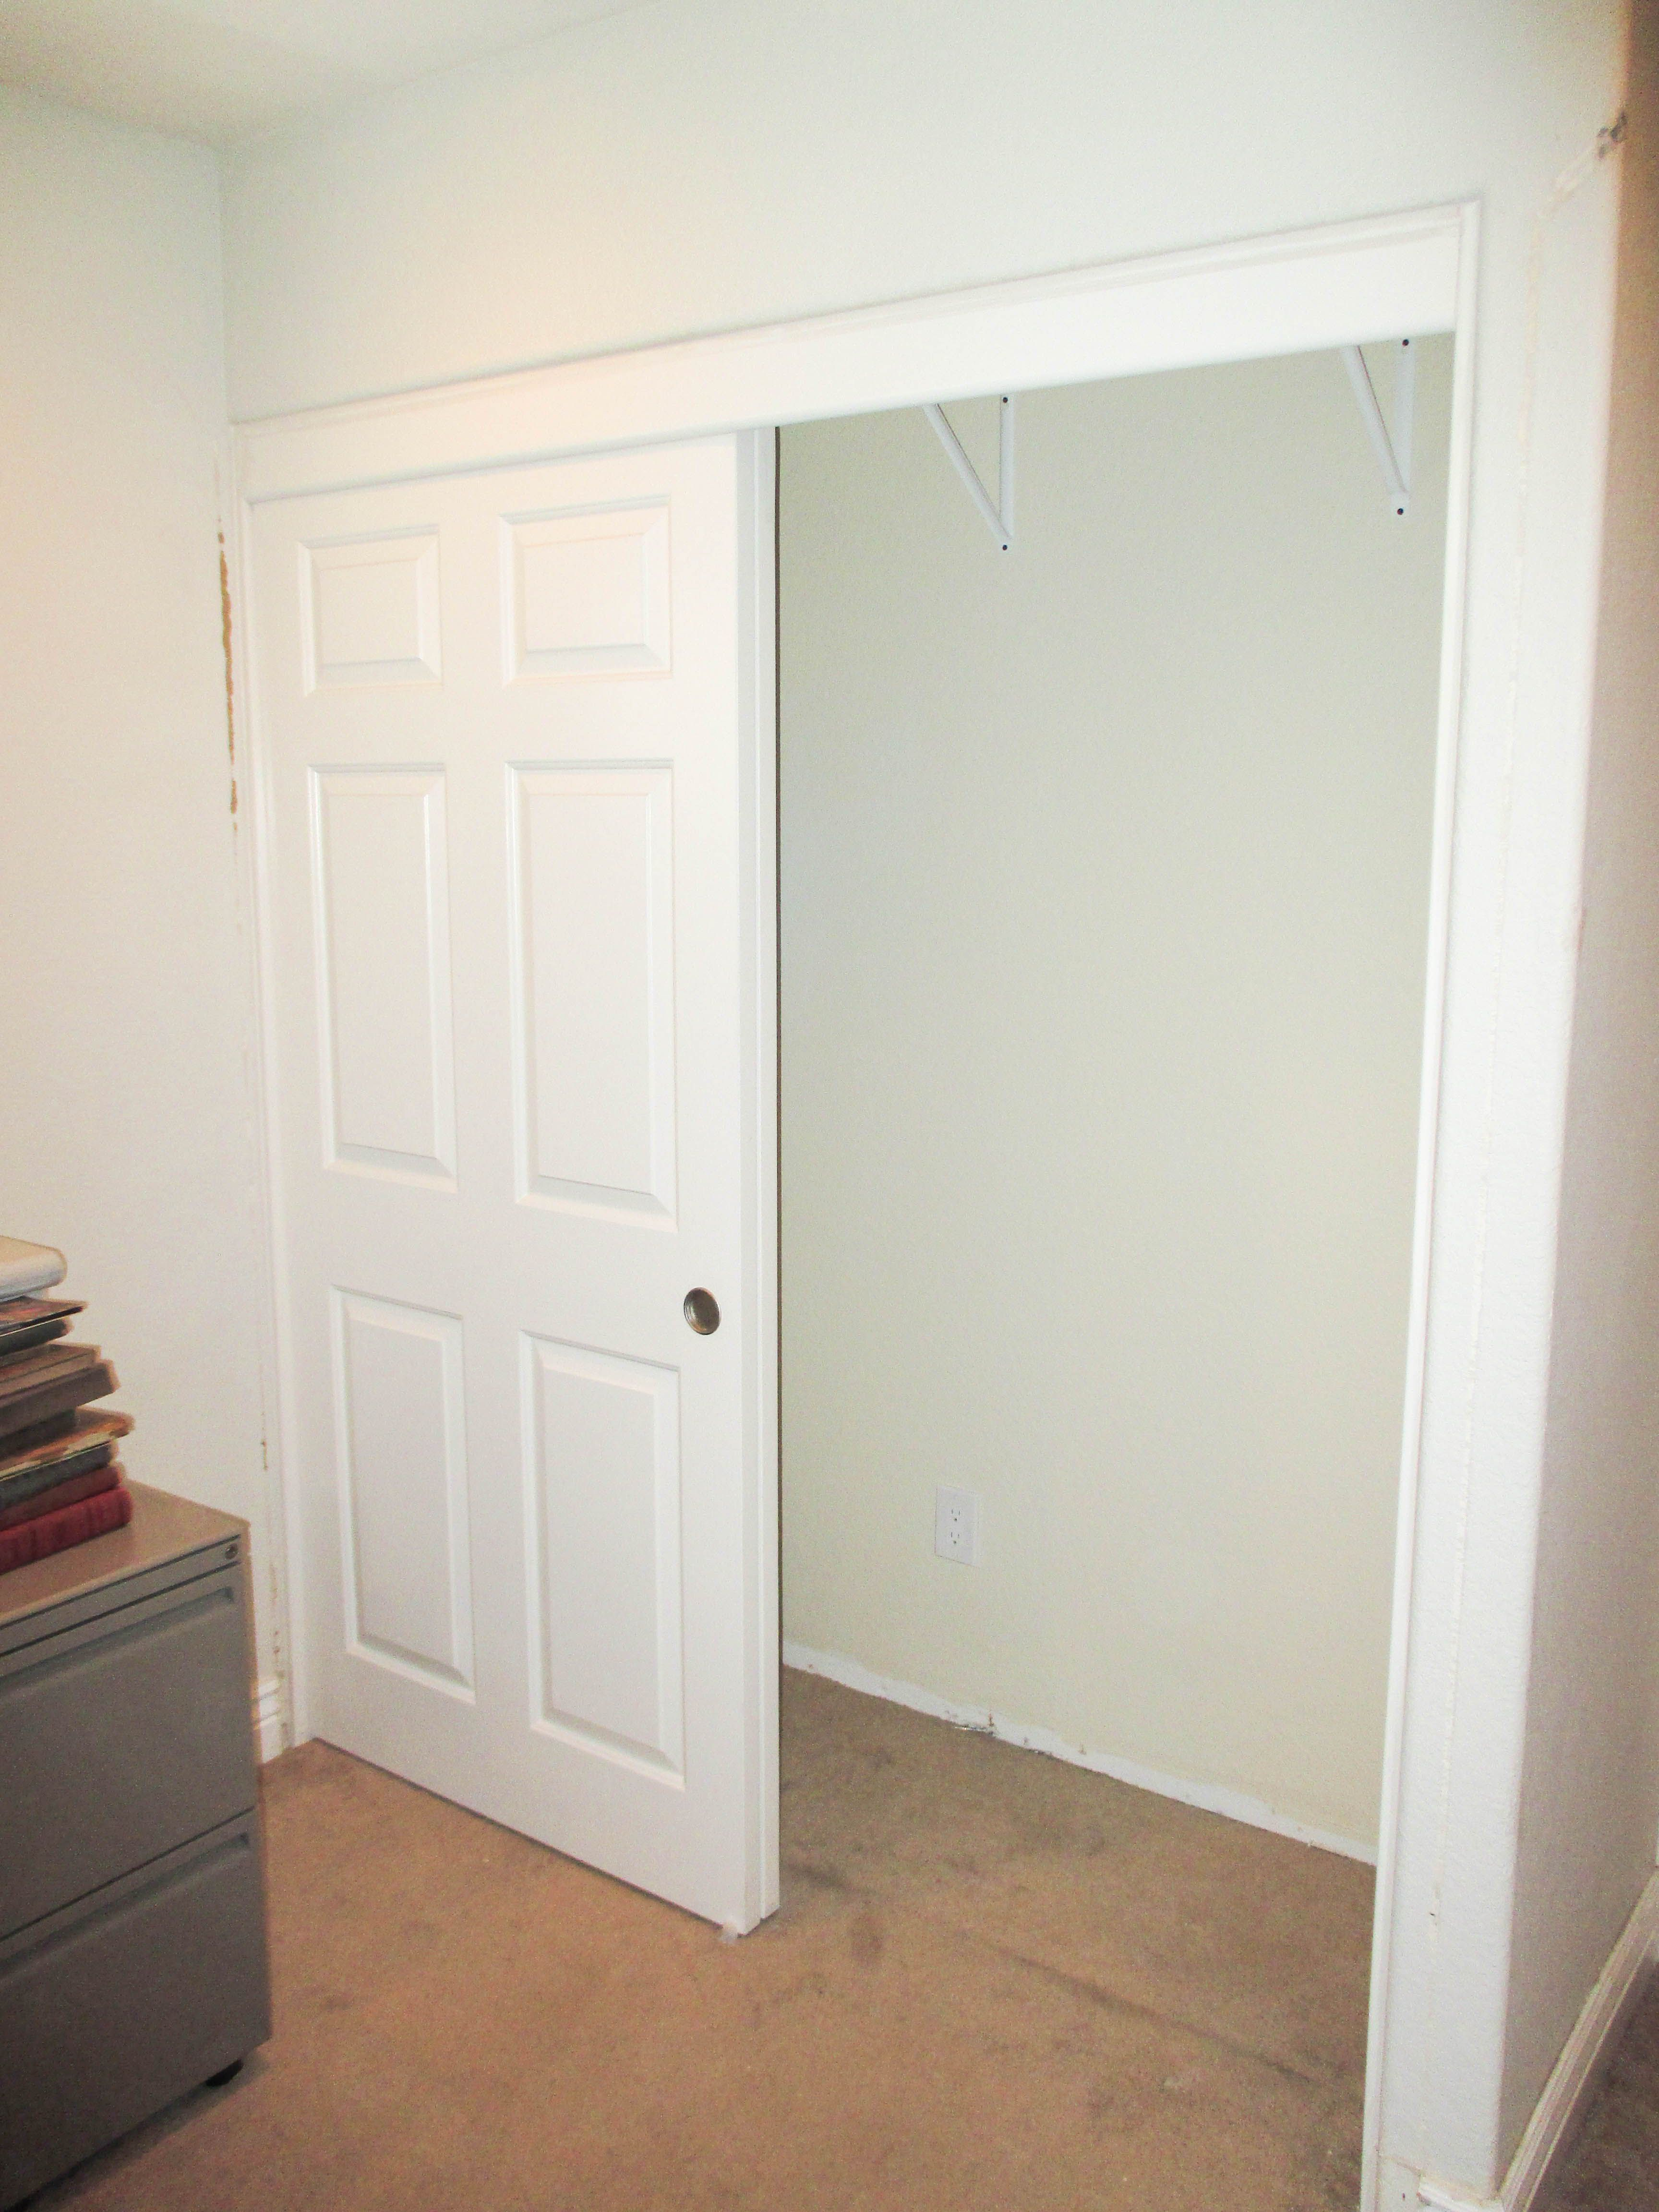 Check out these 2 track 2 panel top hung solid core Closet Doors with colonial designs that our team installed in an office If you have brand new carpet